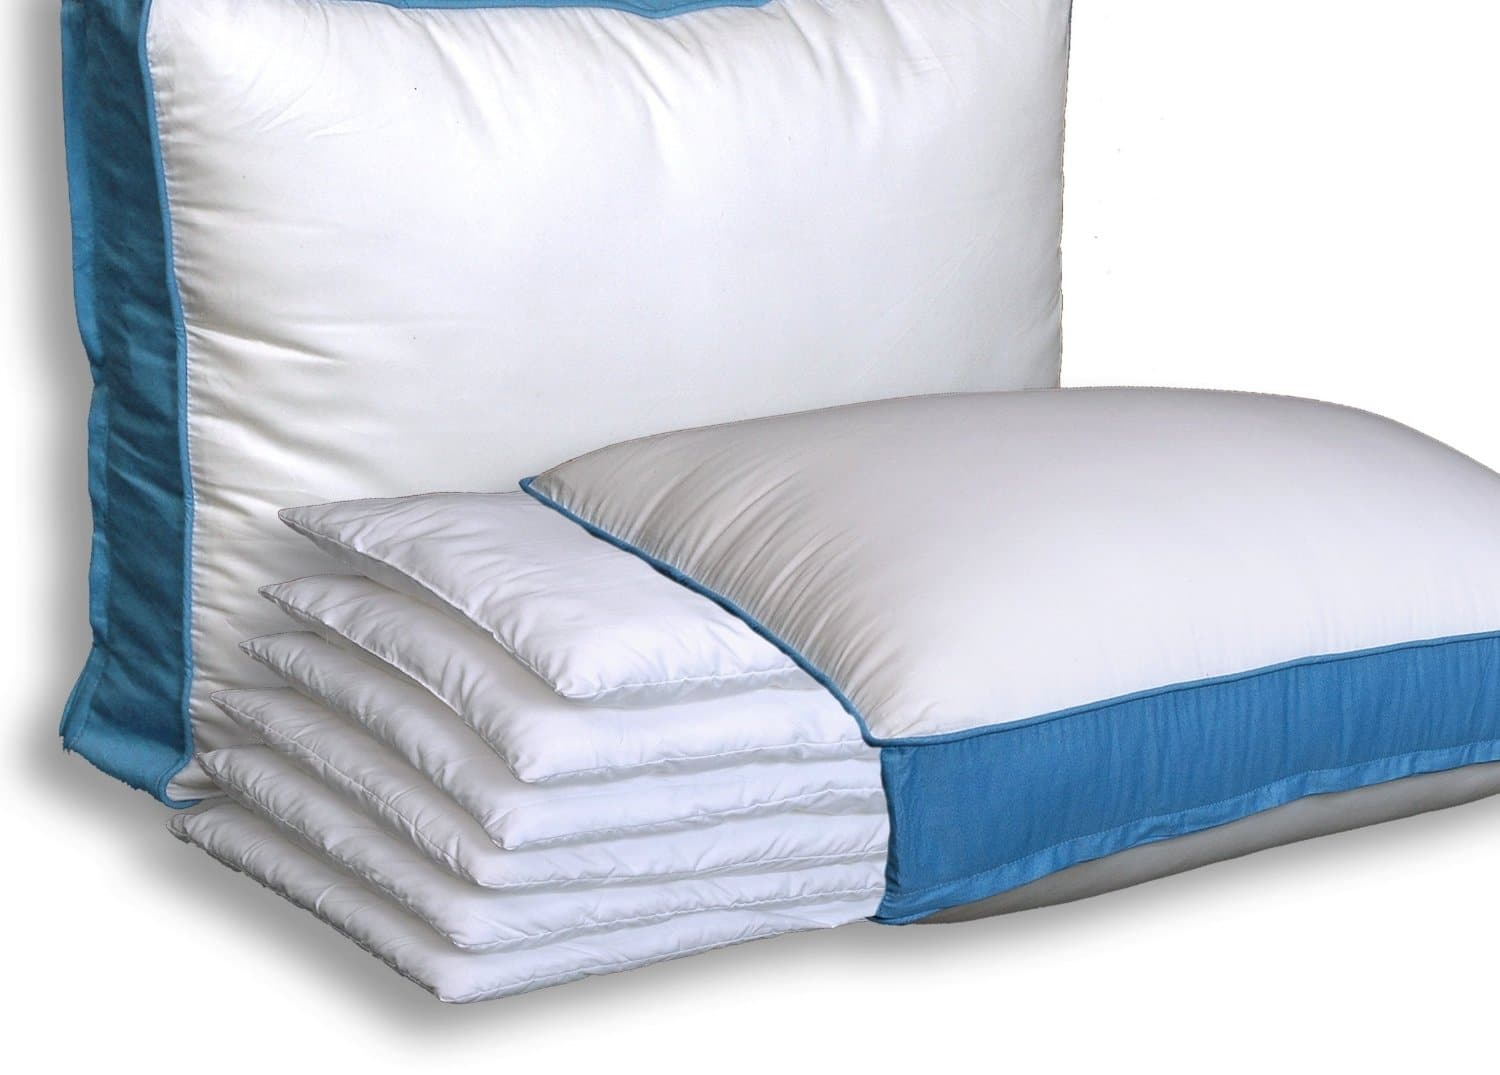 Best pillow for stomach sleepers 5 life changers that for Best down pillows for stomach sleepers